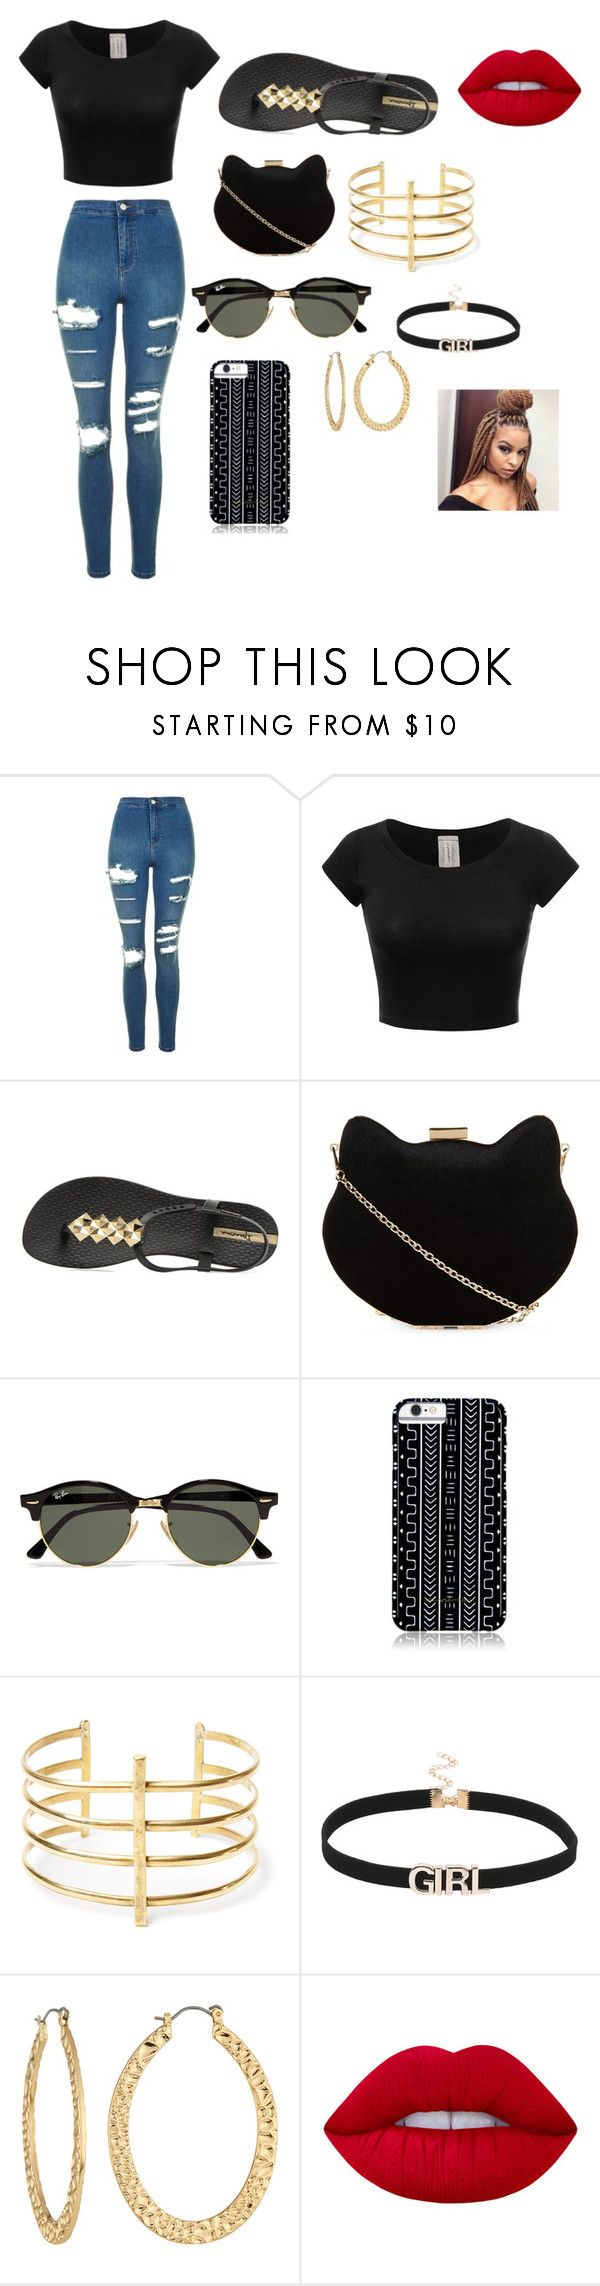 """Untitled #34"" by barnessh on Polyvore featuring Topshop, IPANEMA, New Look, Ray-Ban, Savannah Hayes, BauXo, Fragments and Lime Crime"